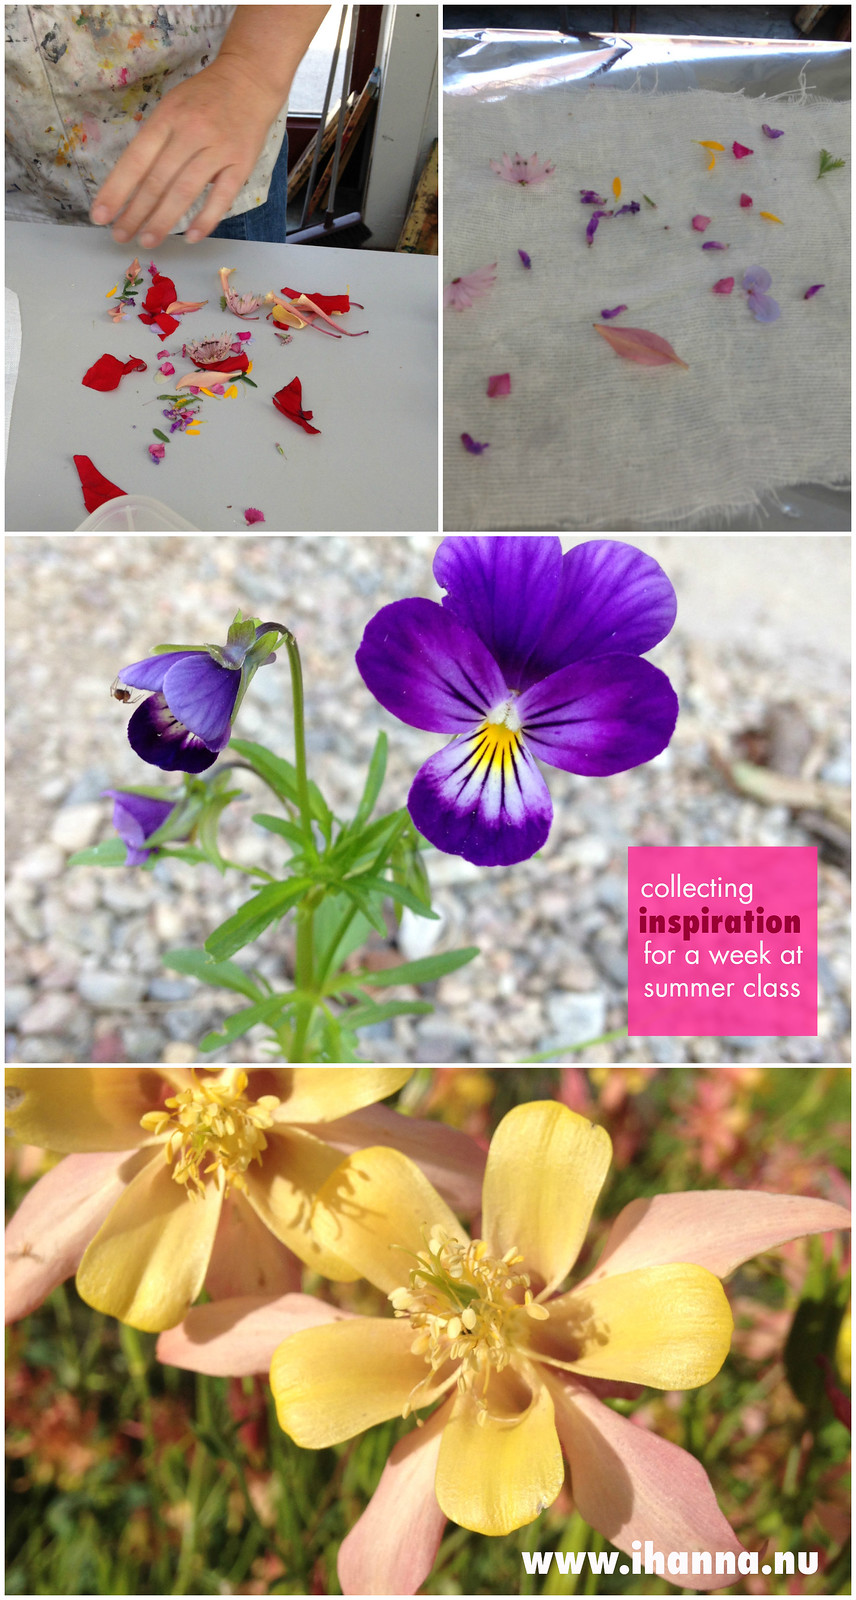 Collecting inspiration collage flowers - photos by @ihanna #inspiration #sweden